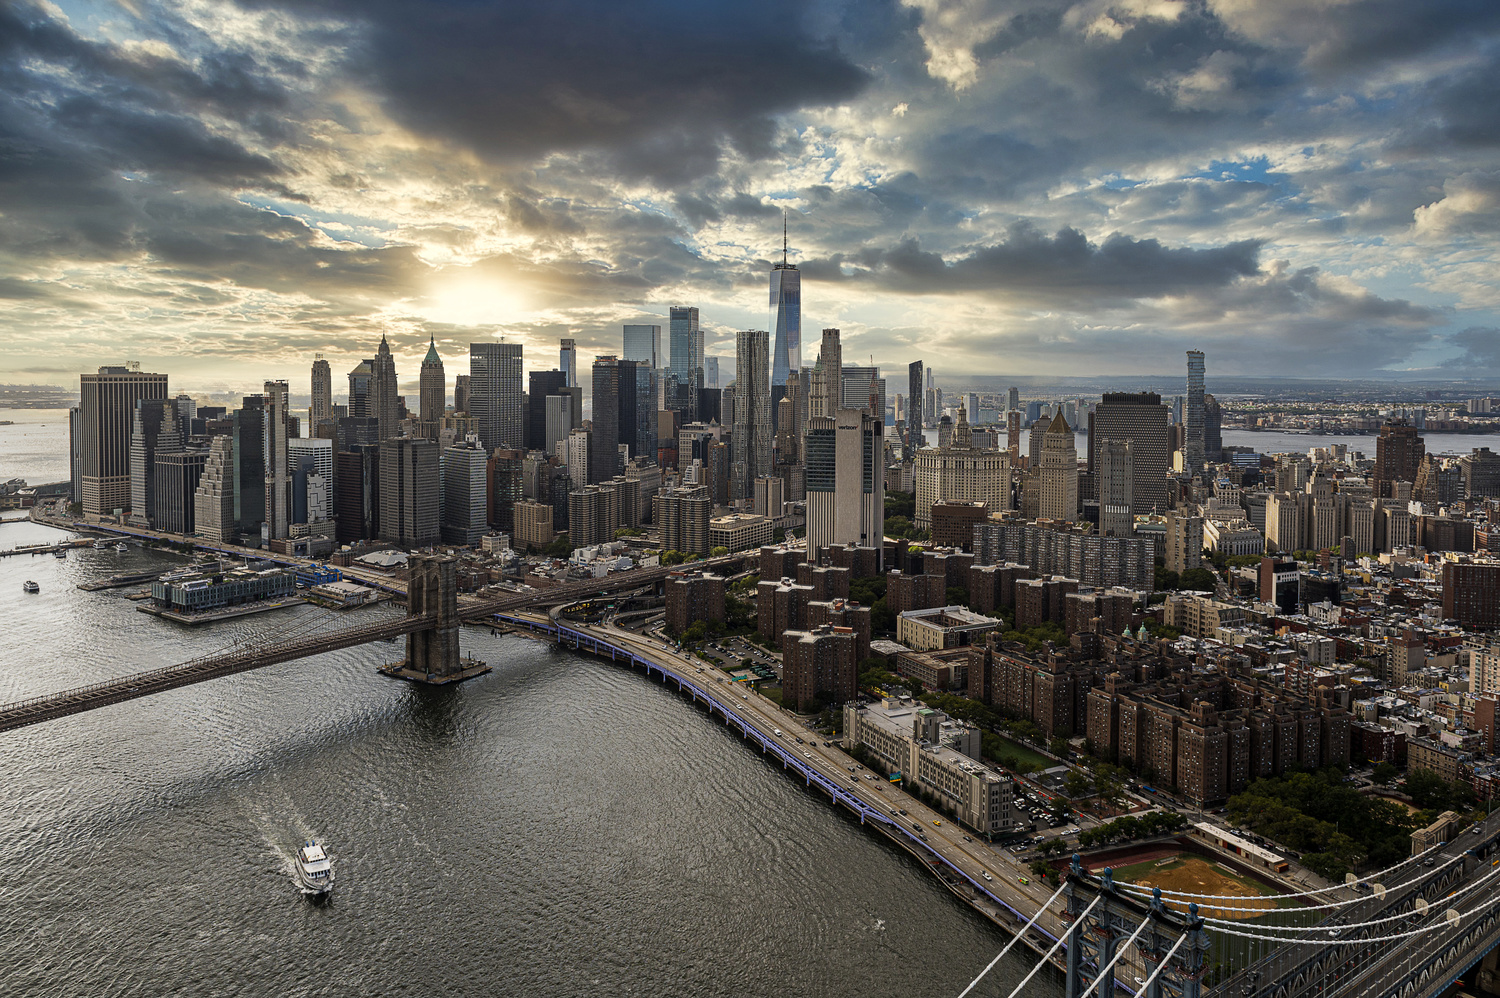 NYC by Eric Snyder